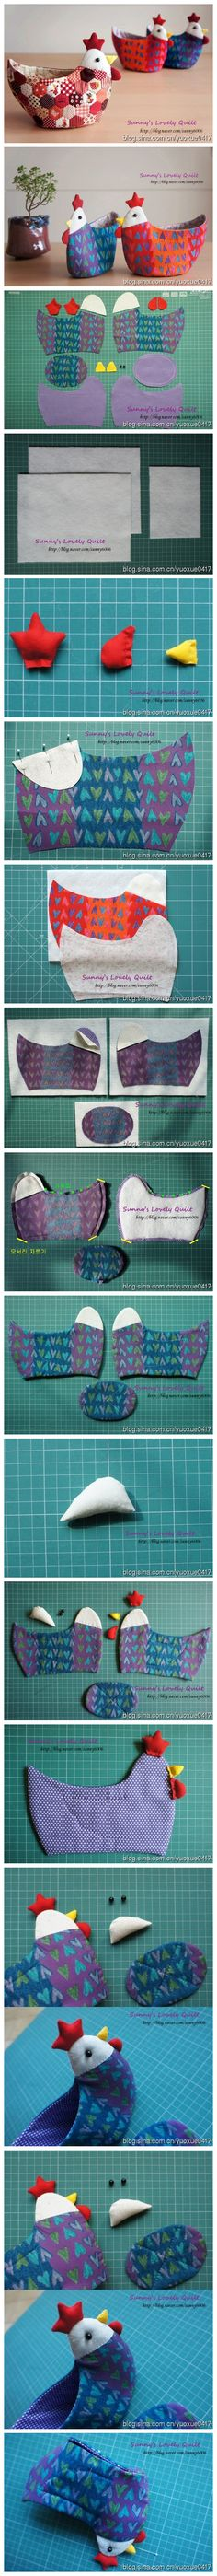 chicken fabric basket.....(this is so cockle-doodling cute! and what an inspiring picture tutorial! i want to create a few of these!)...